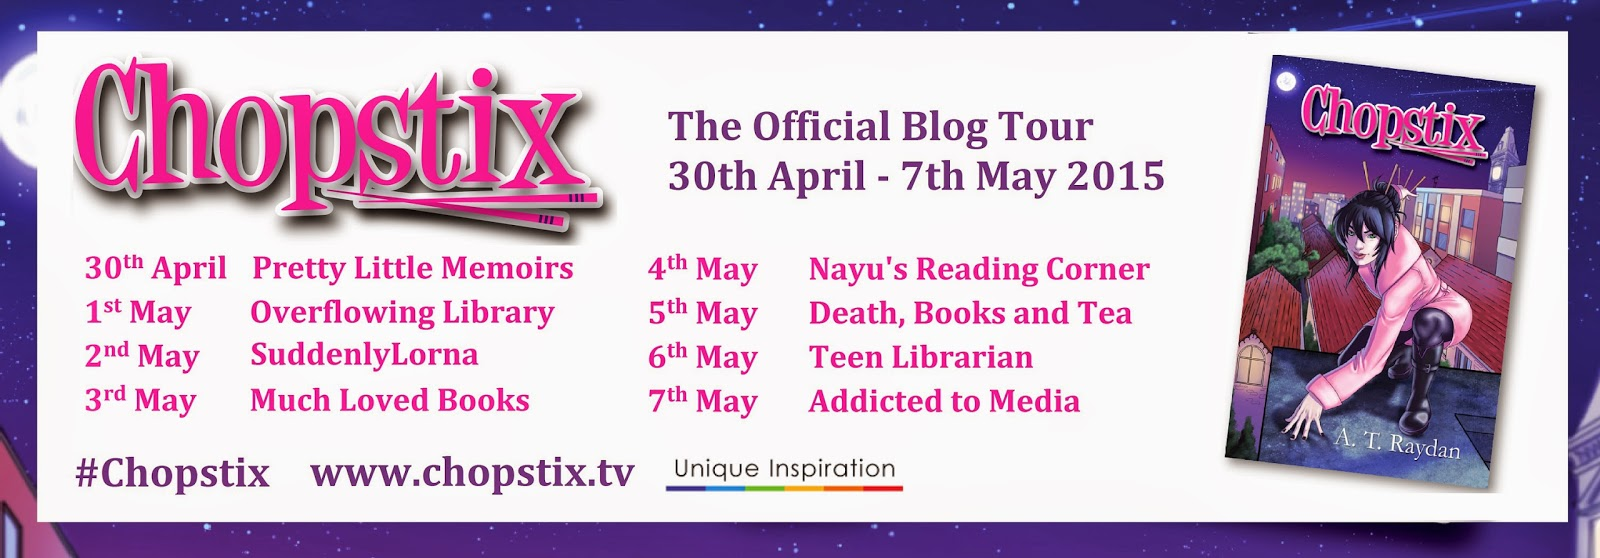 "Blog Tour: ""Chopstix"" by A. T. Raydan"